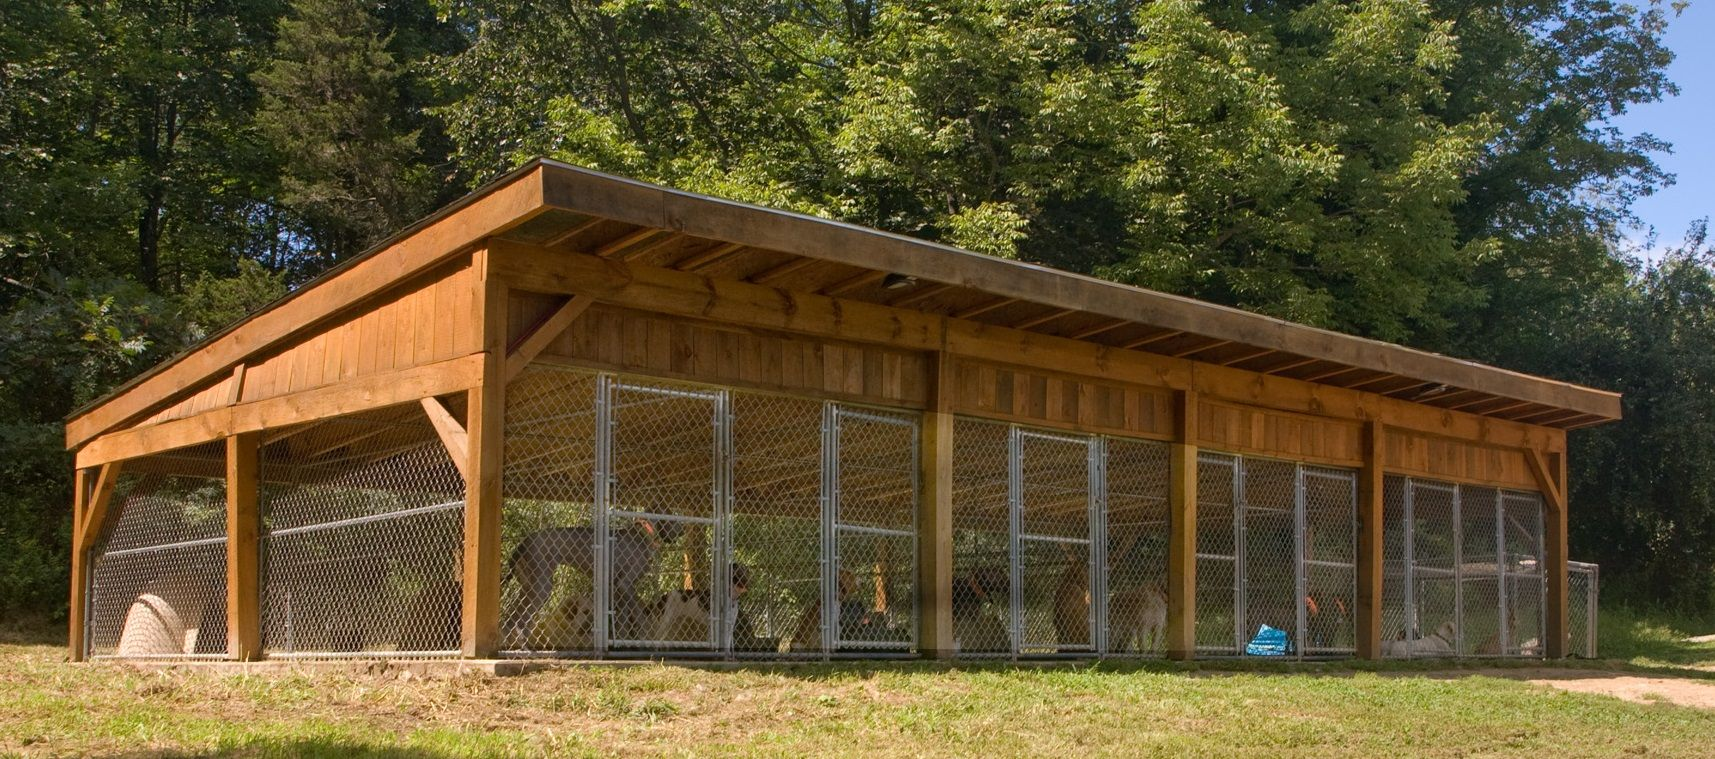 hunting dog kennel designs - bing images | dog kennel designs